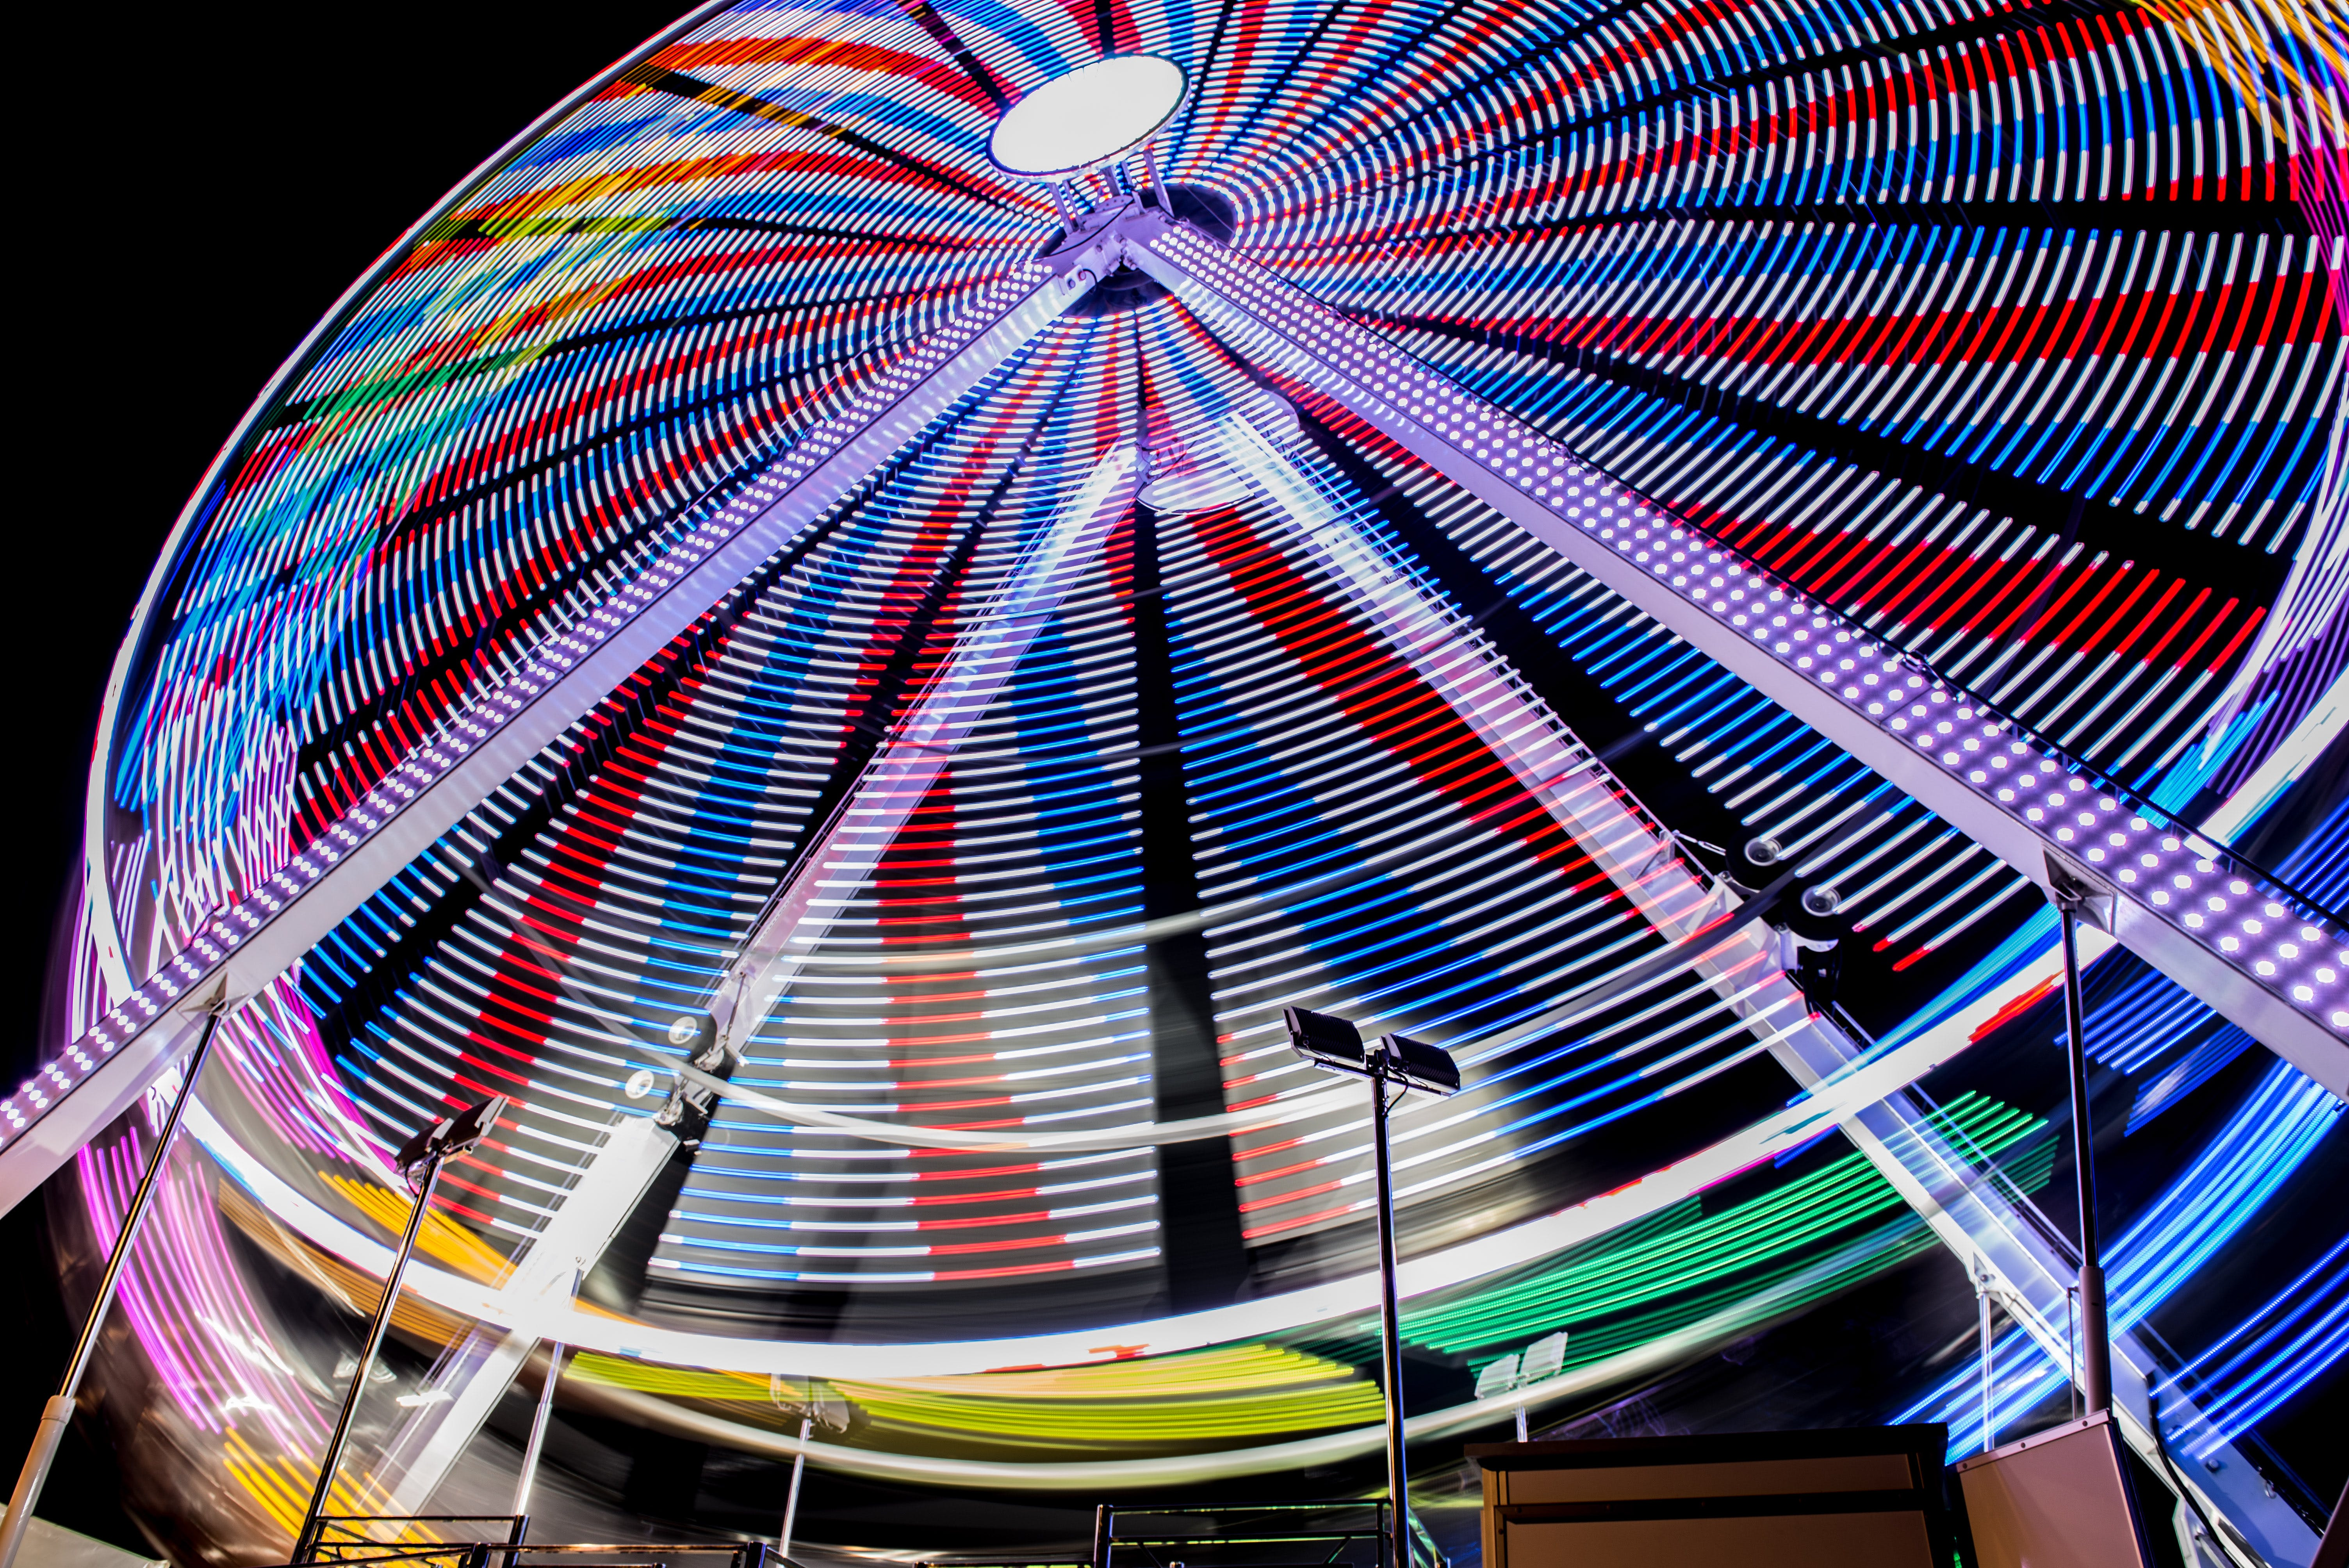 Multicolored Ferry's Wheel during Night Time